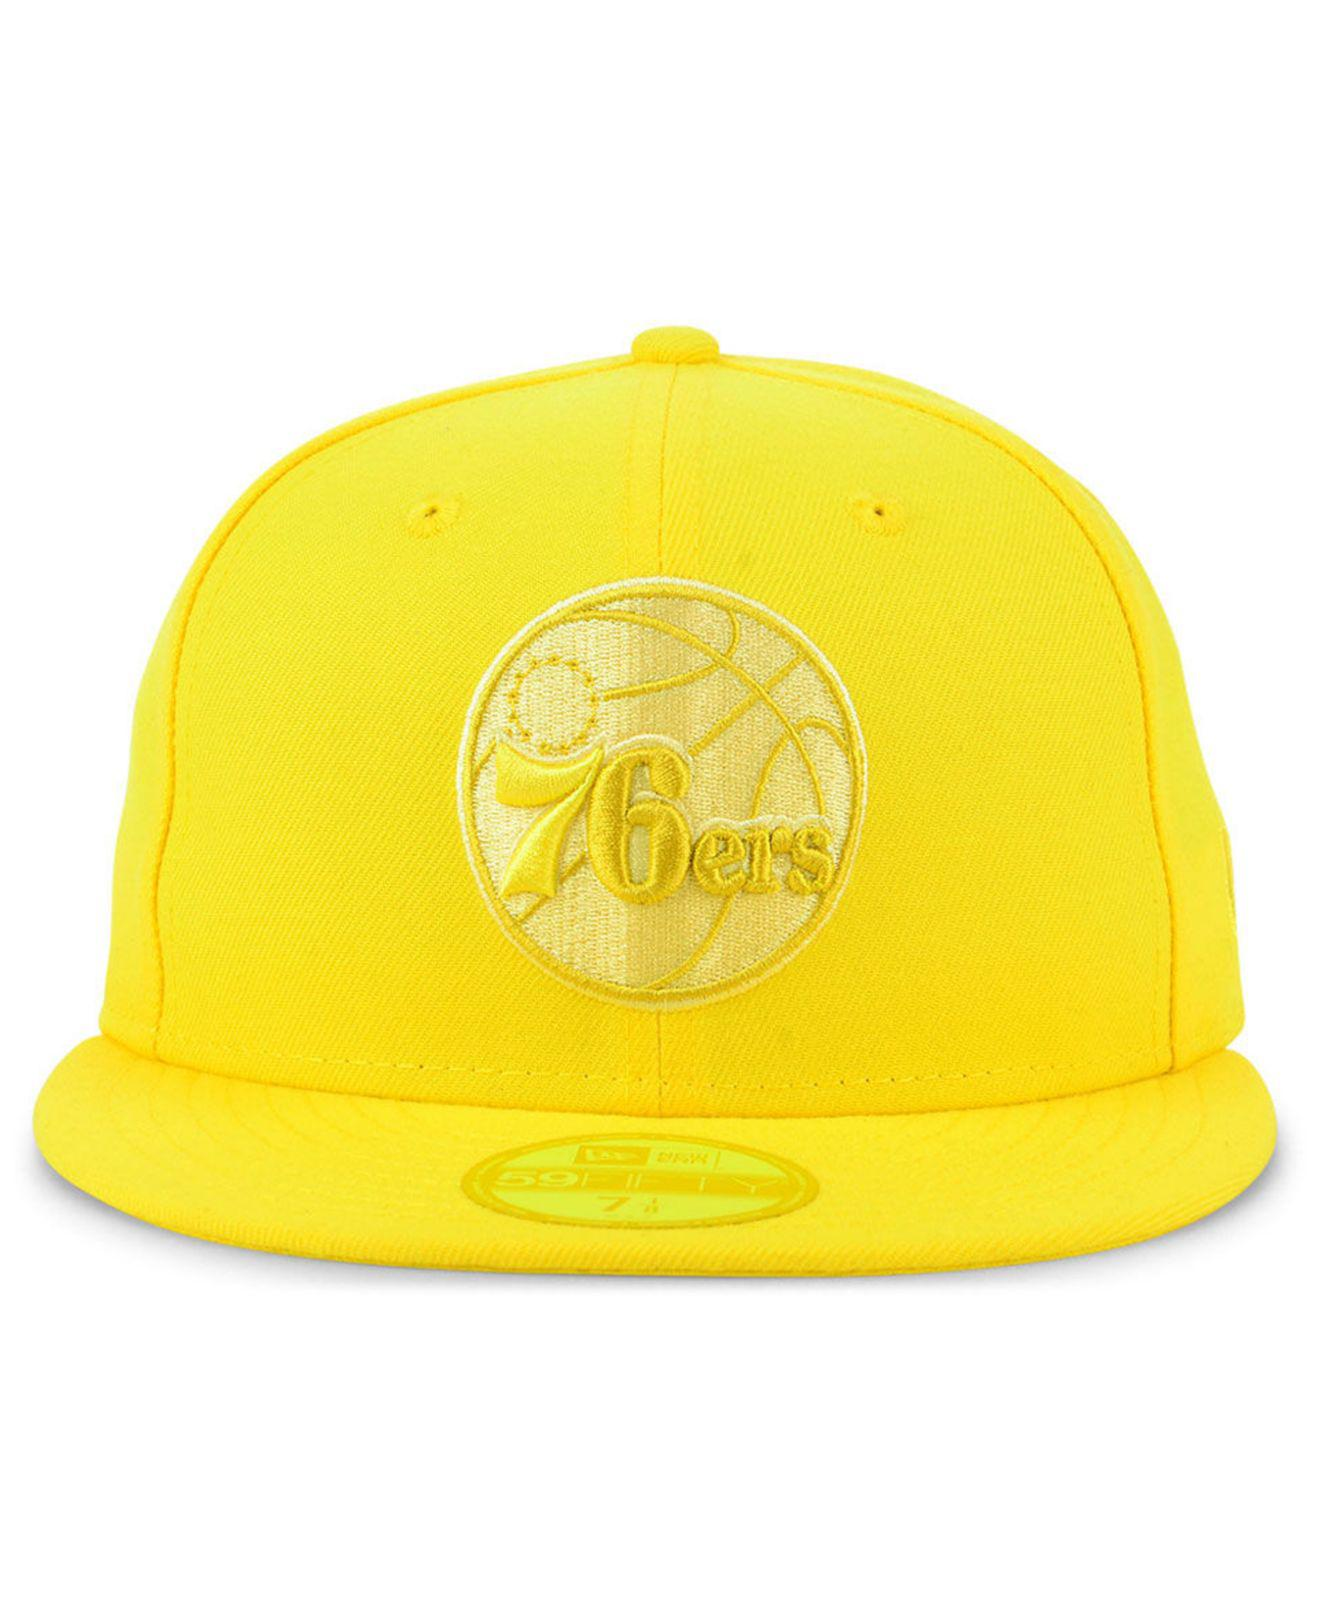 quality design 992da 123dd ... coupon for lyst ktz philadelphia 76ers color prism pack 59fifty fitted  cap in yellow for men ...